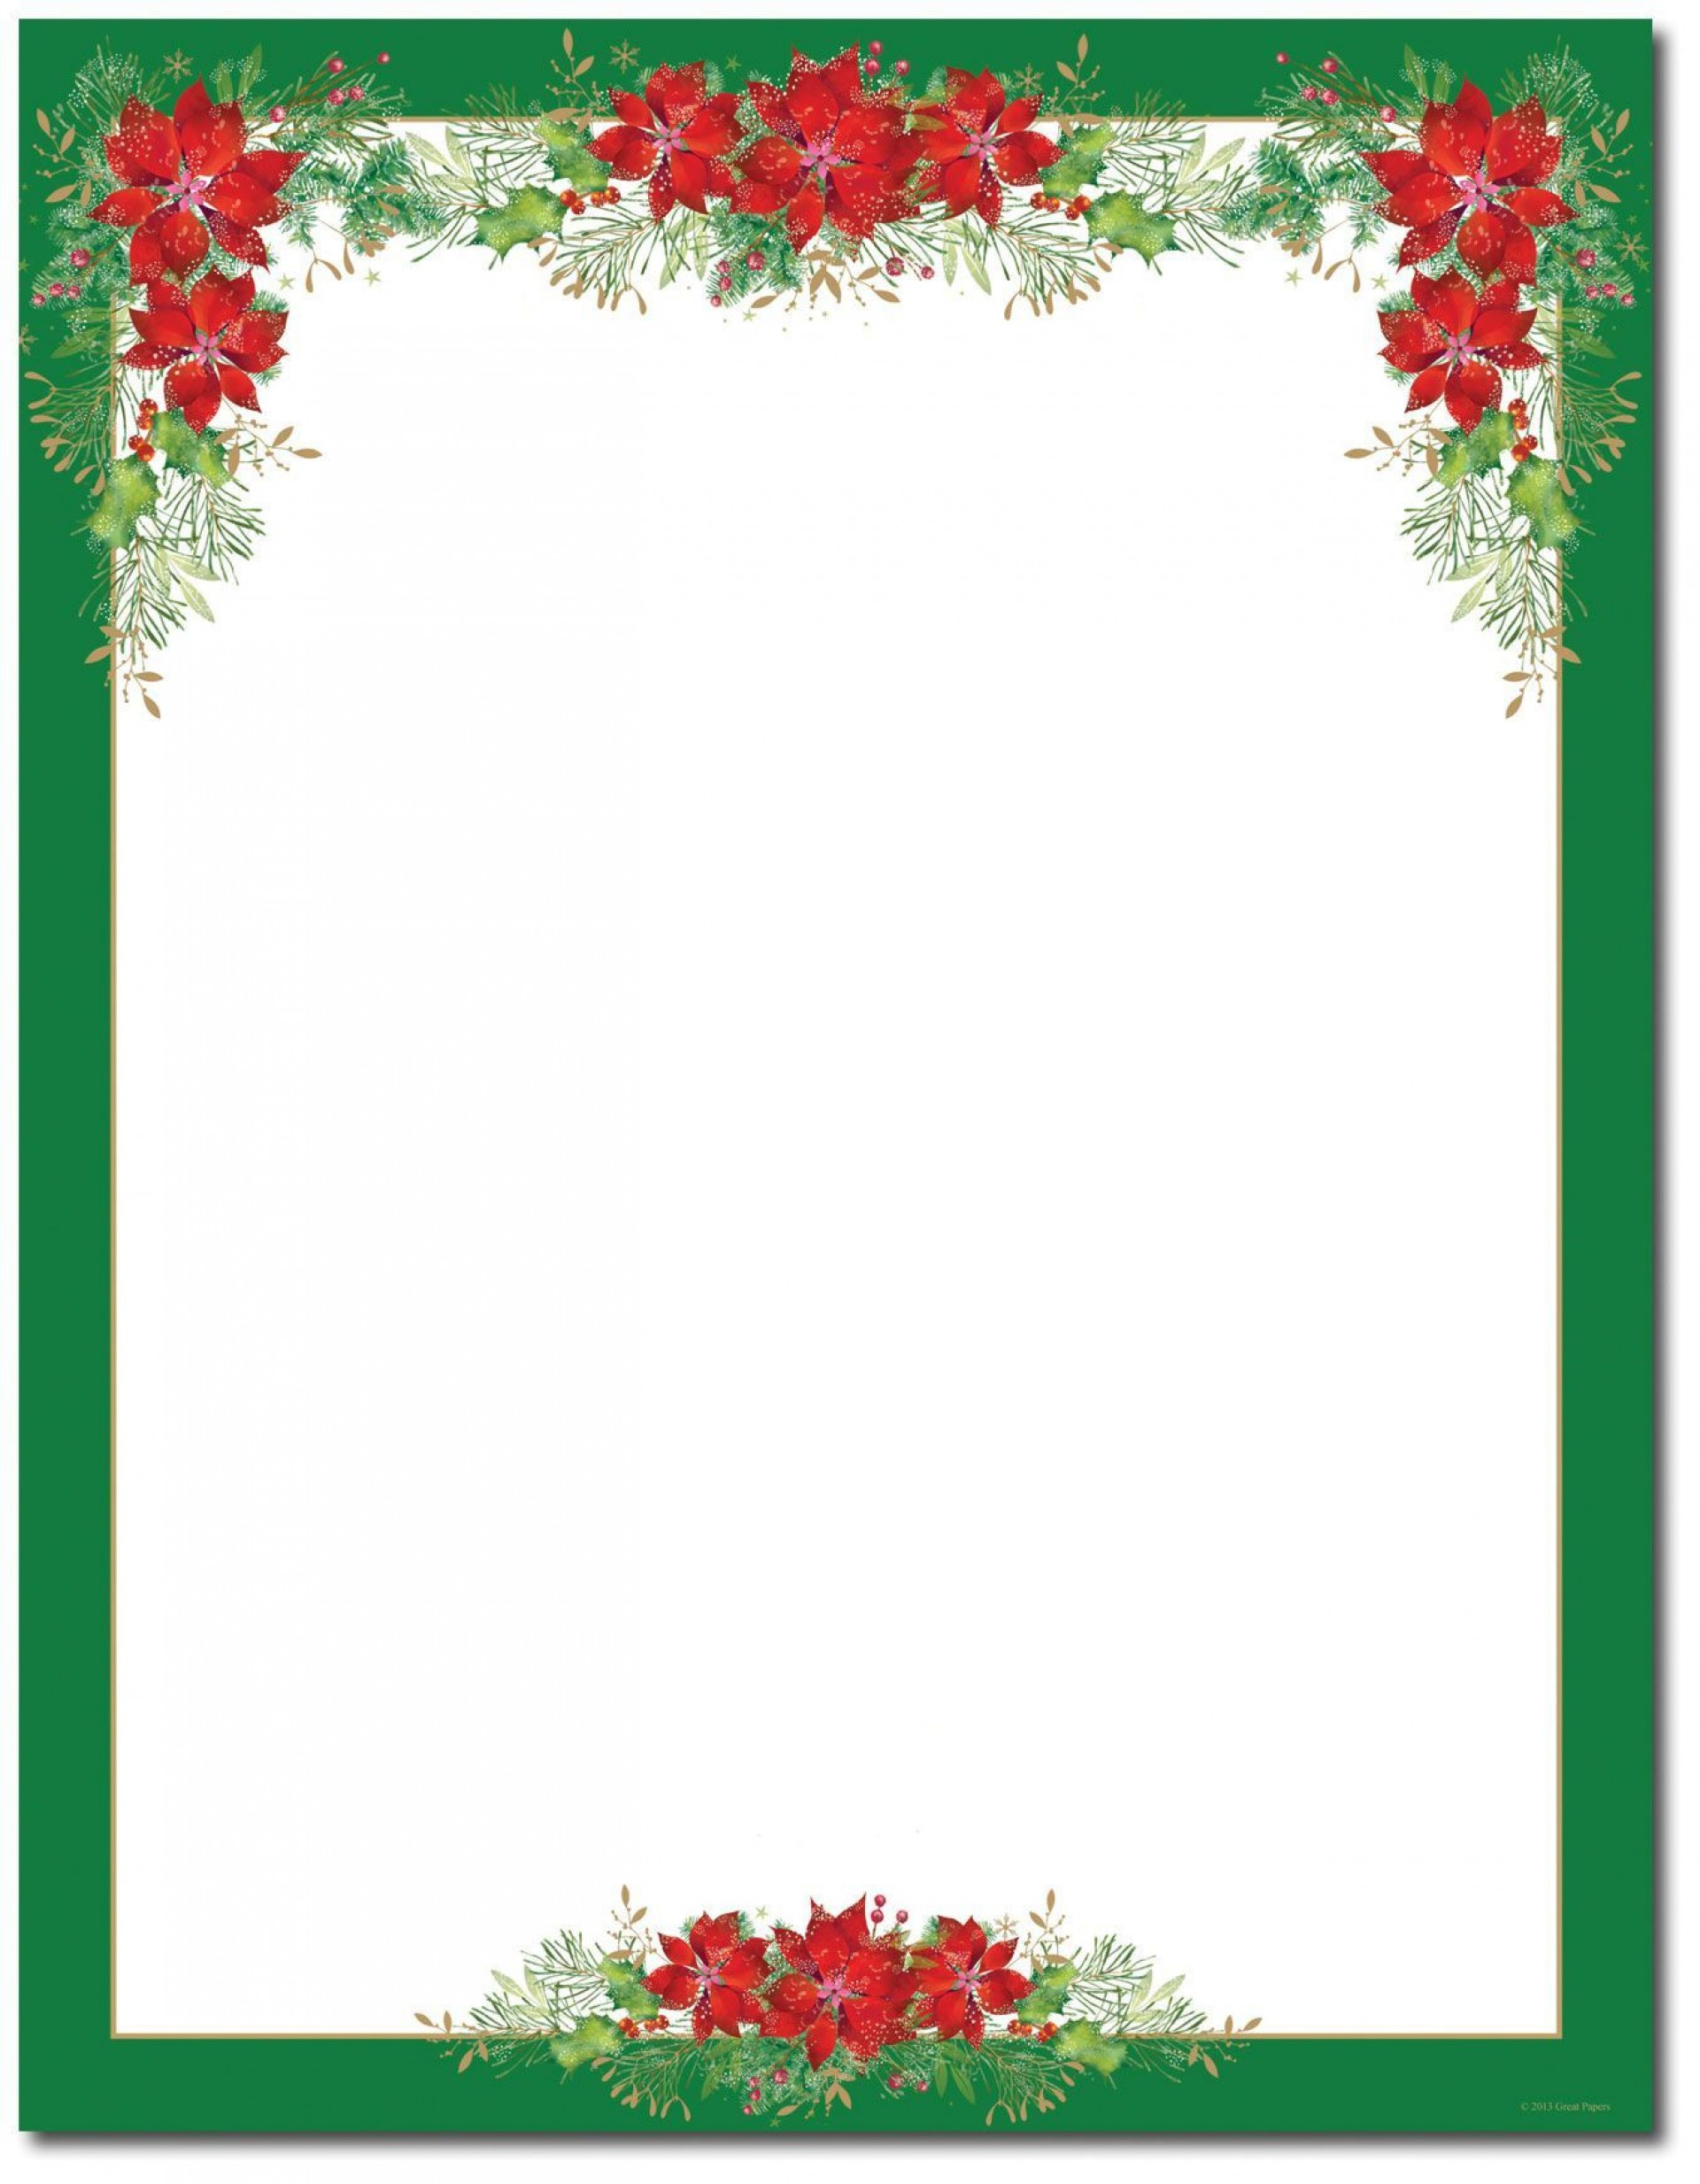 007 Wondrou Free Holiday Stationery Template For Word Image 1920